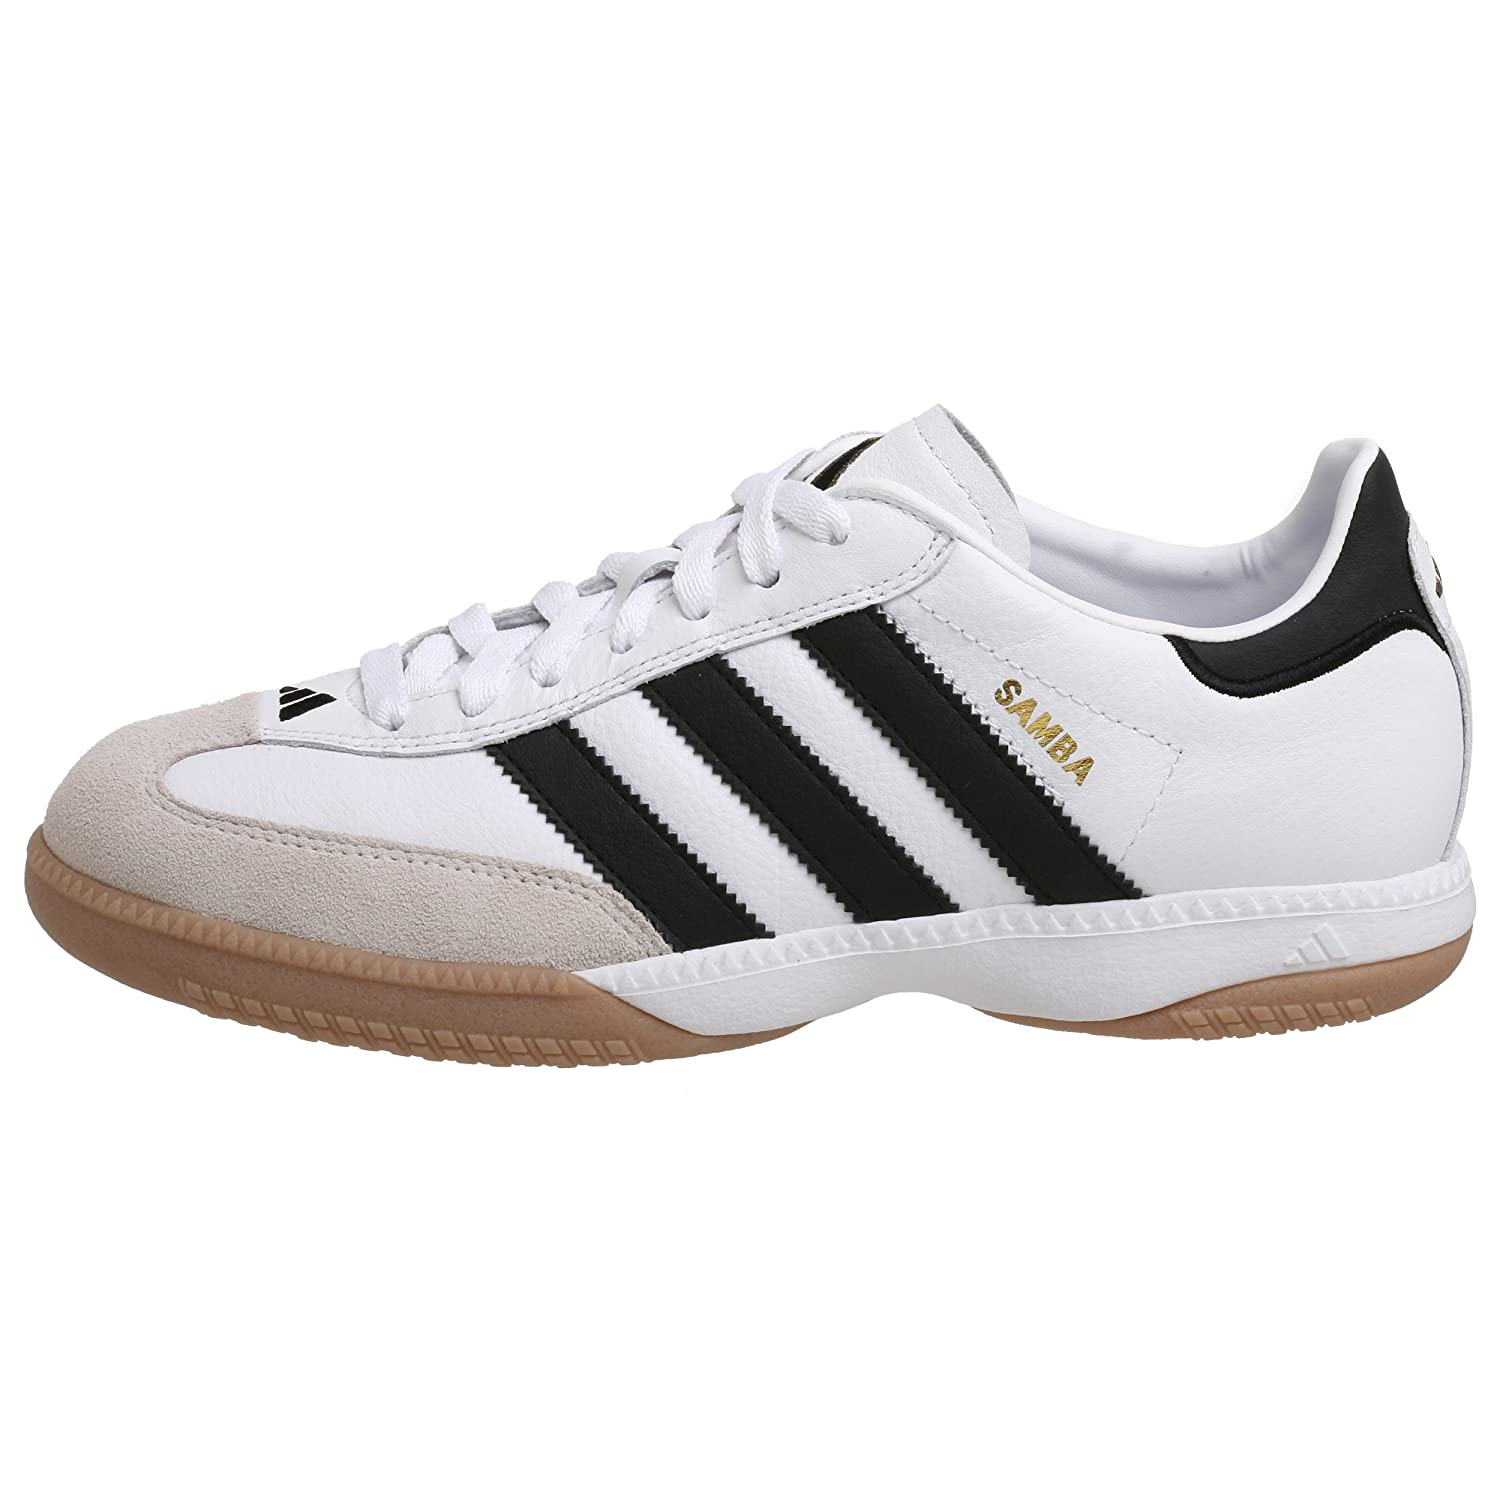 black and white adidas samba